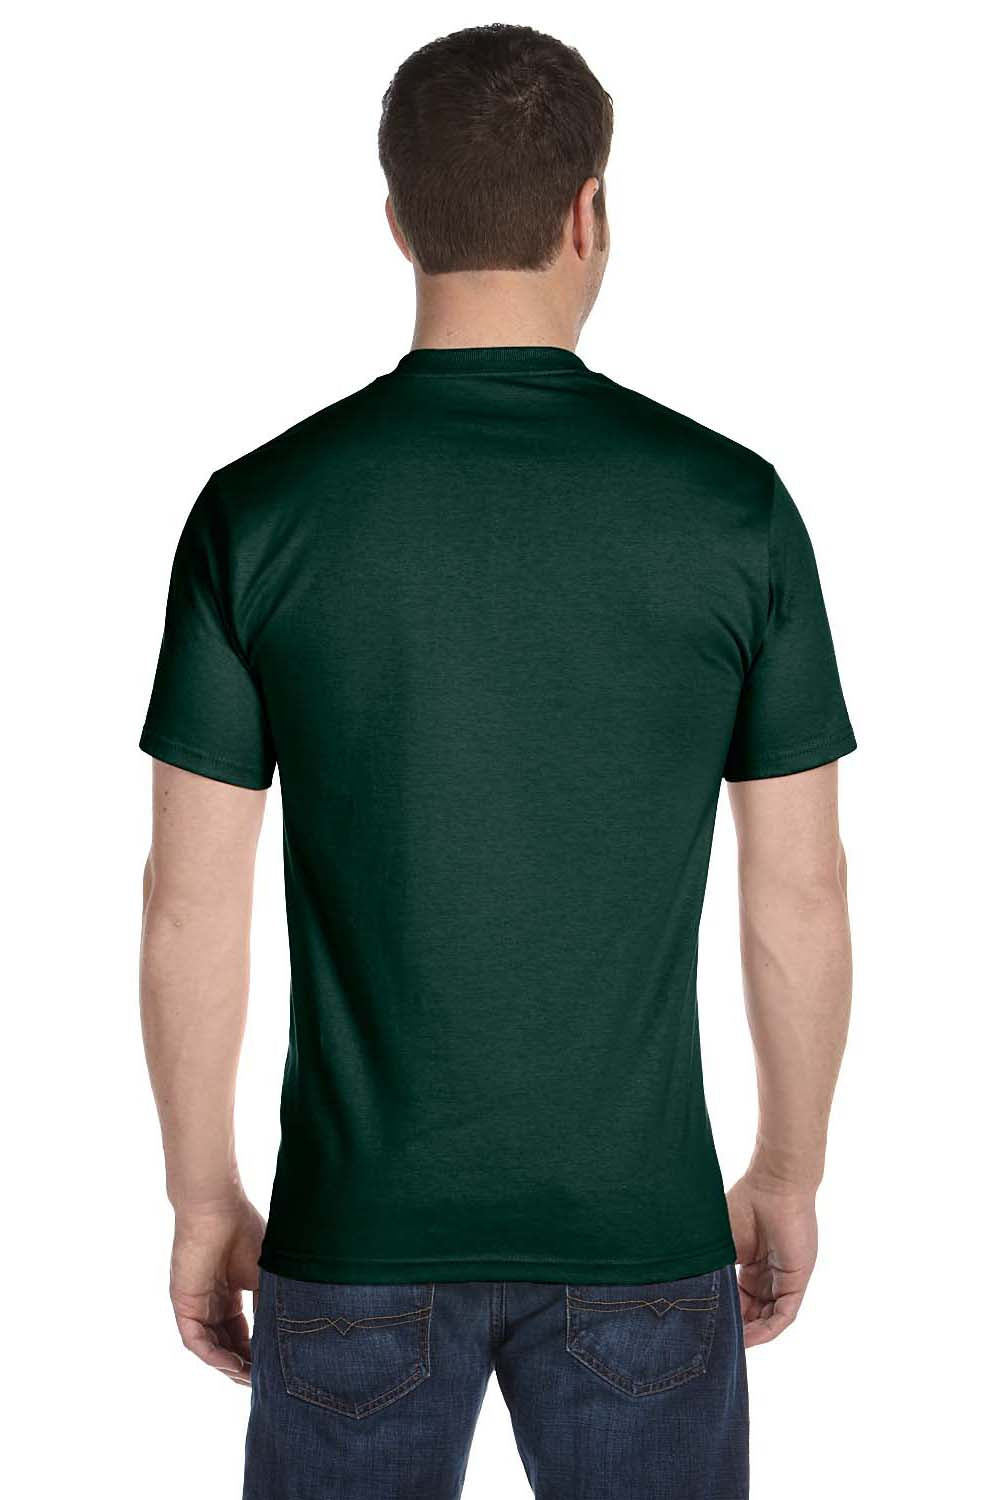 Hanes 5180 Mens Beefy-T Short Sleeve Crewneck T-Shirt Forest Green Back